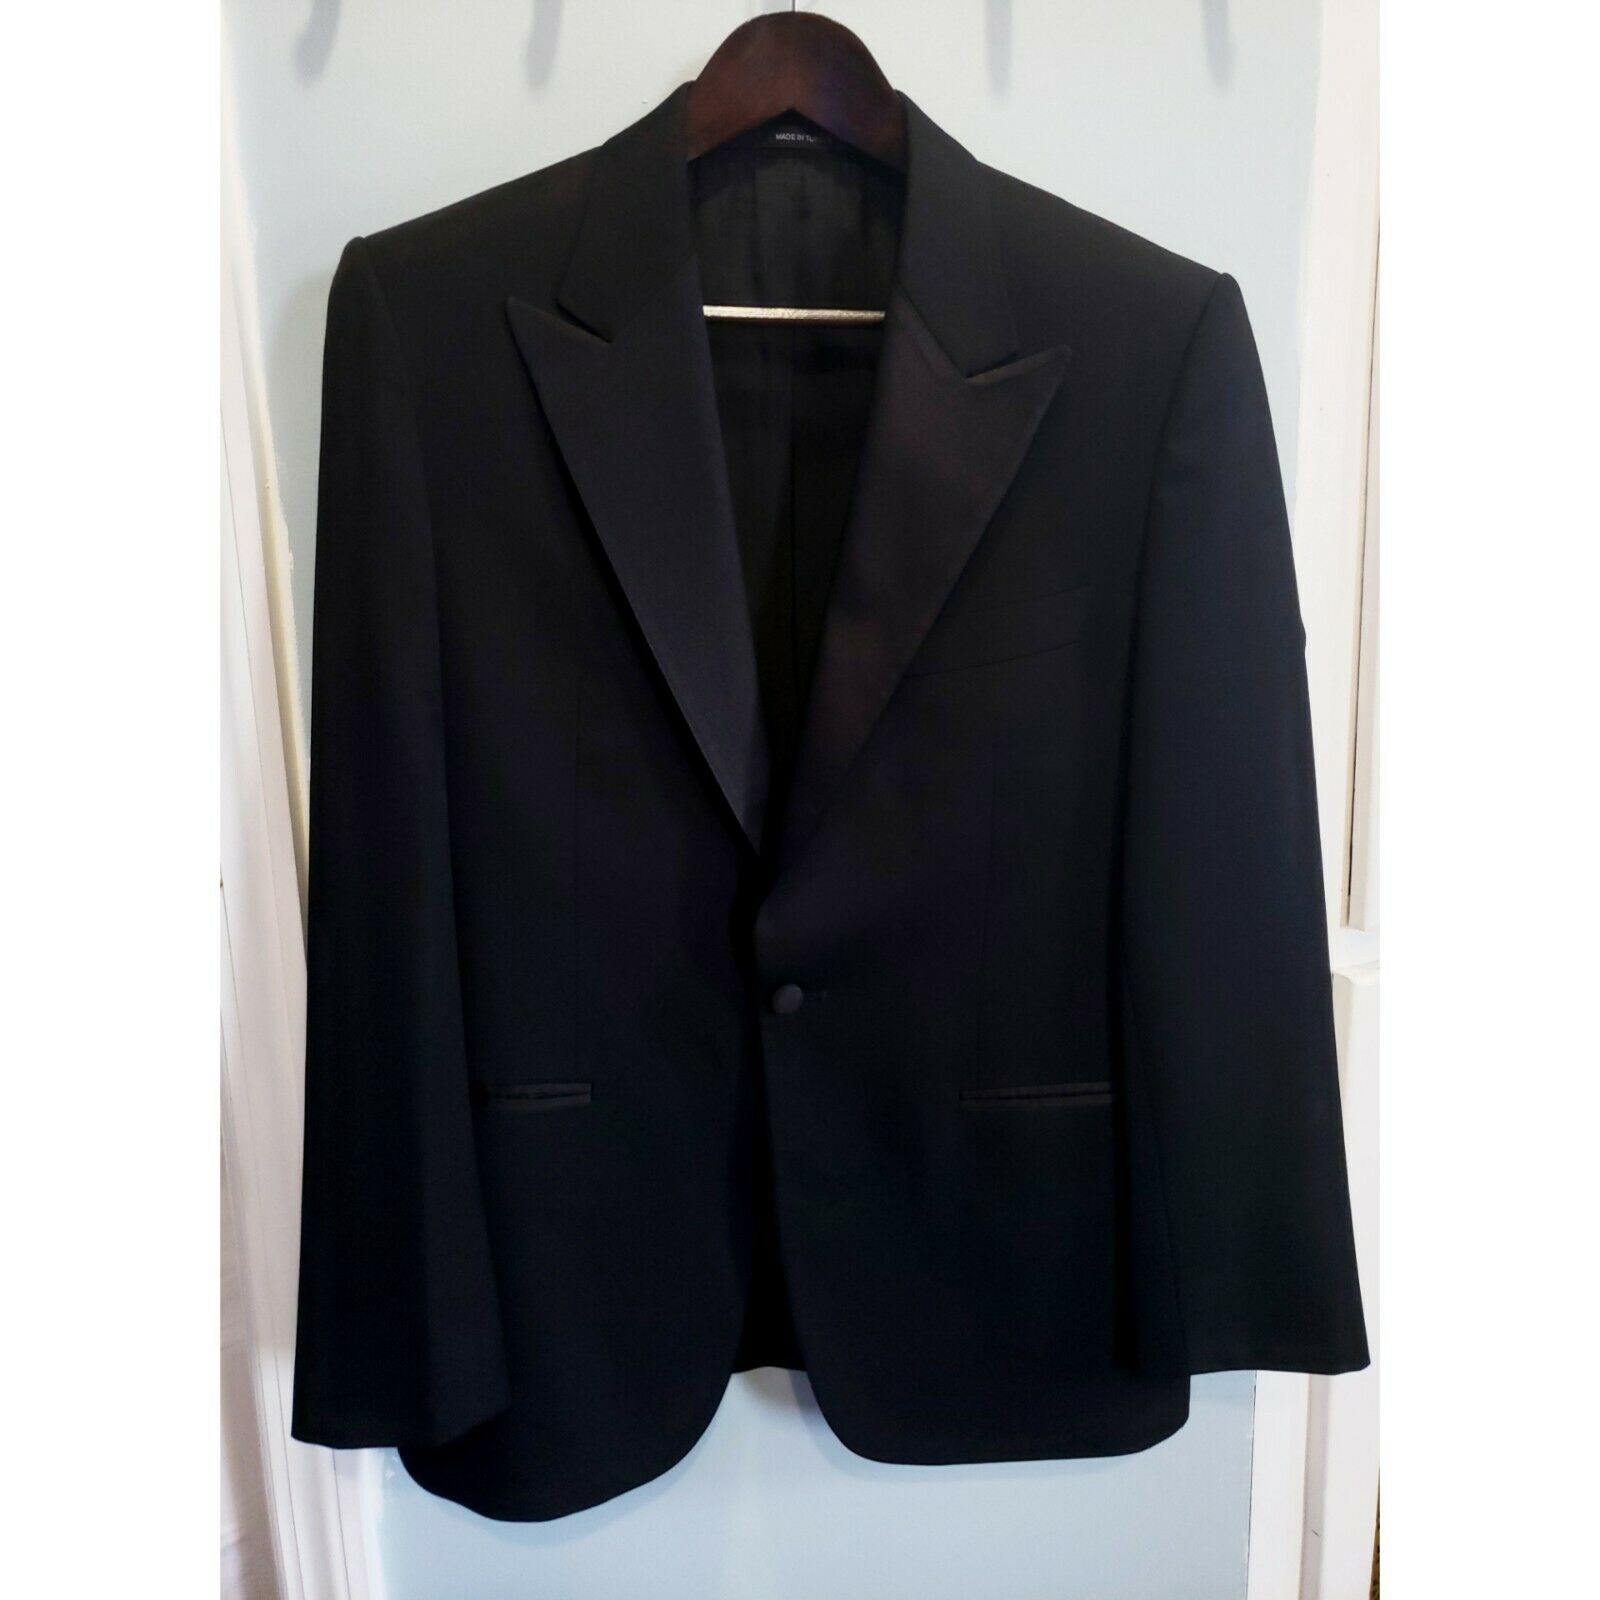 Hugo Boss US 36S Black Tuxedo Suit and Pants Cary Grant Super 100